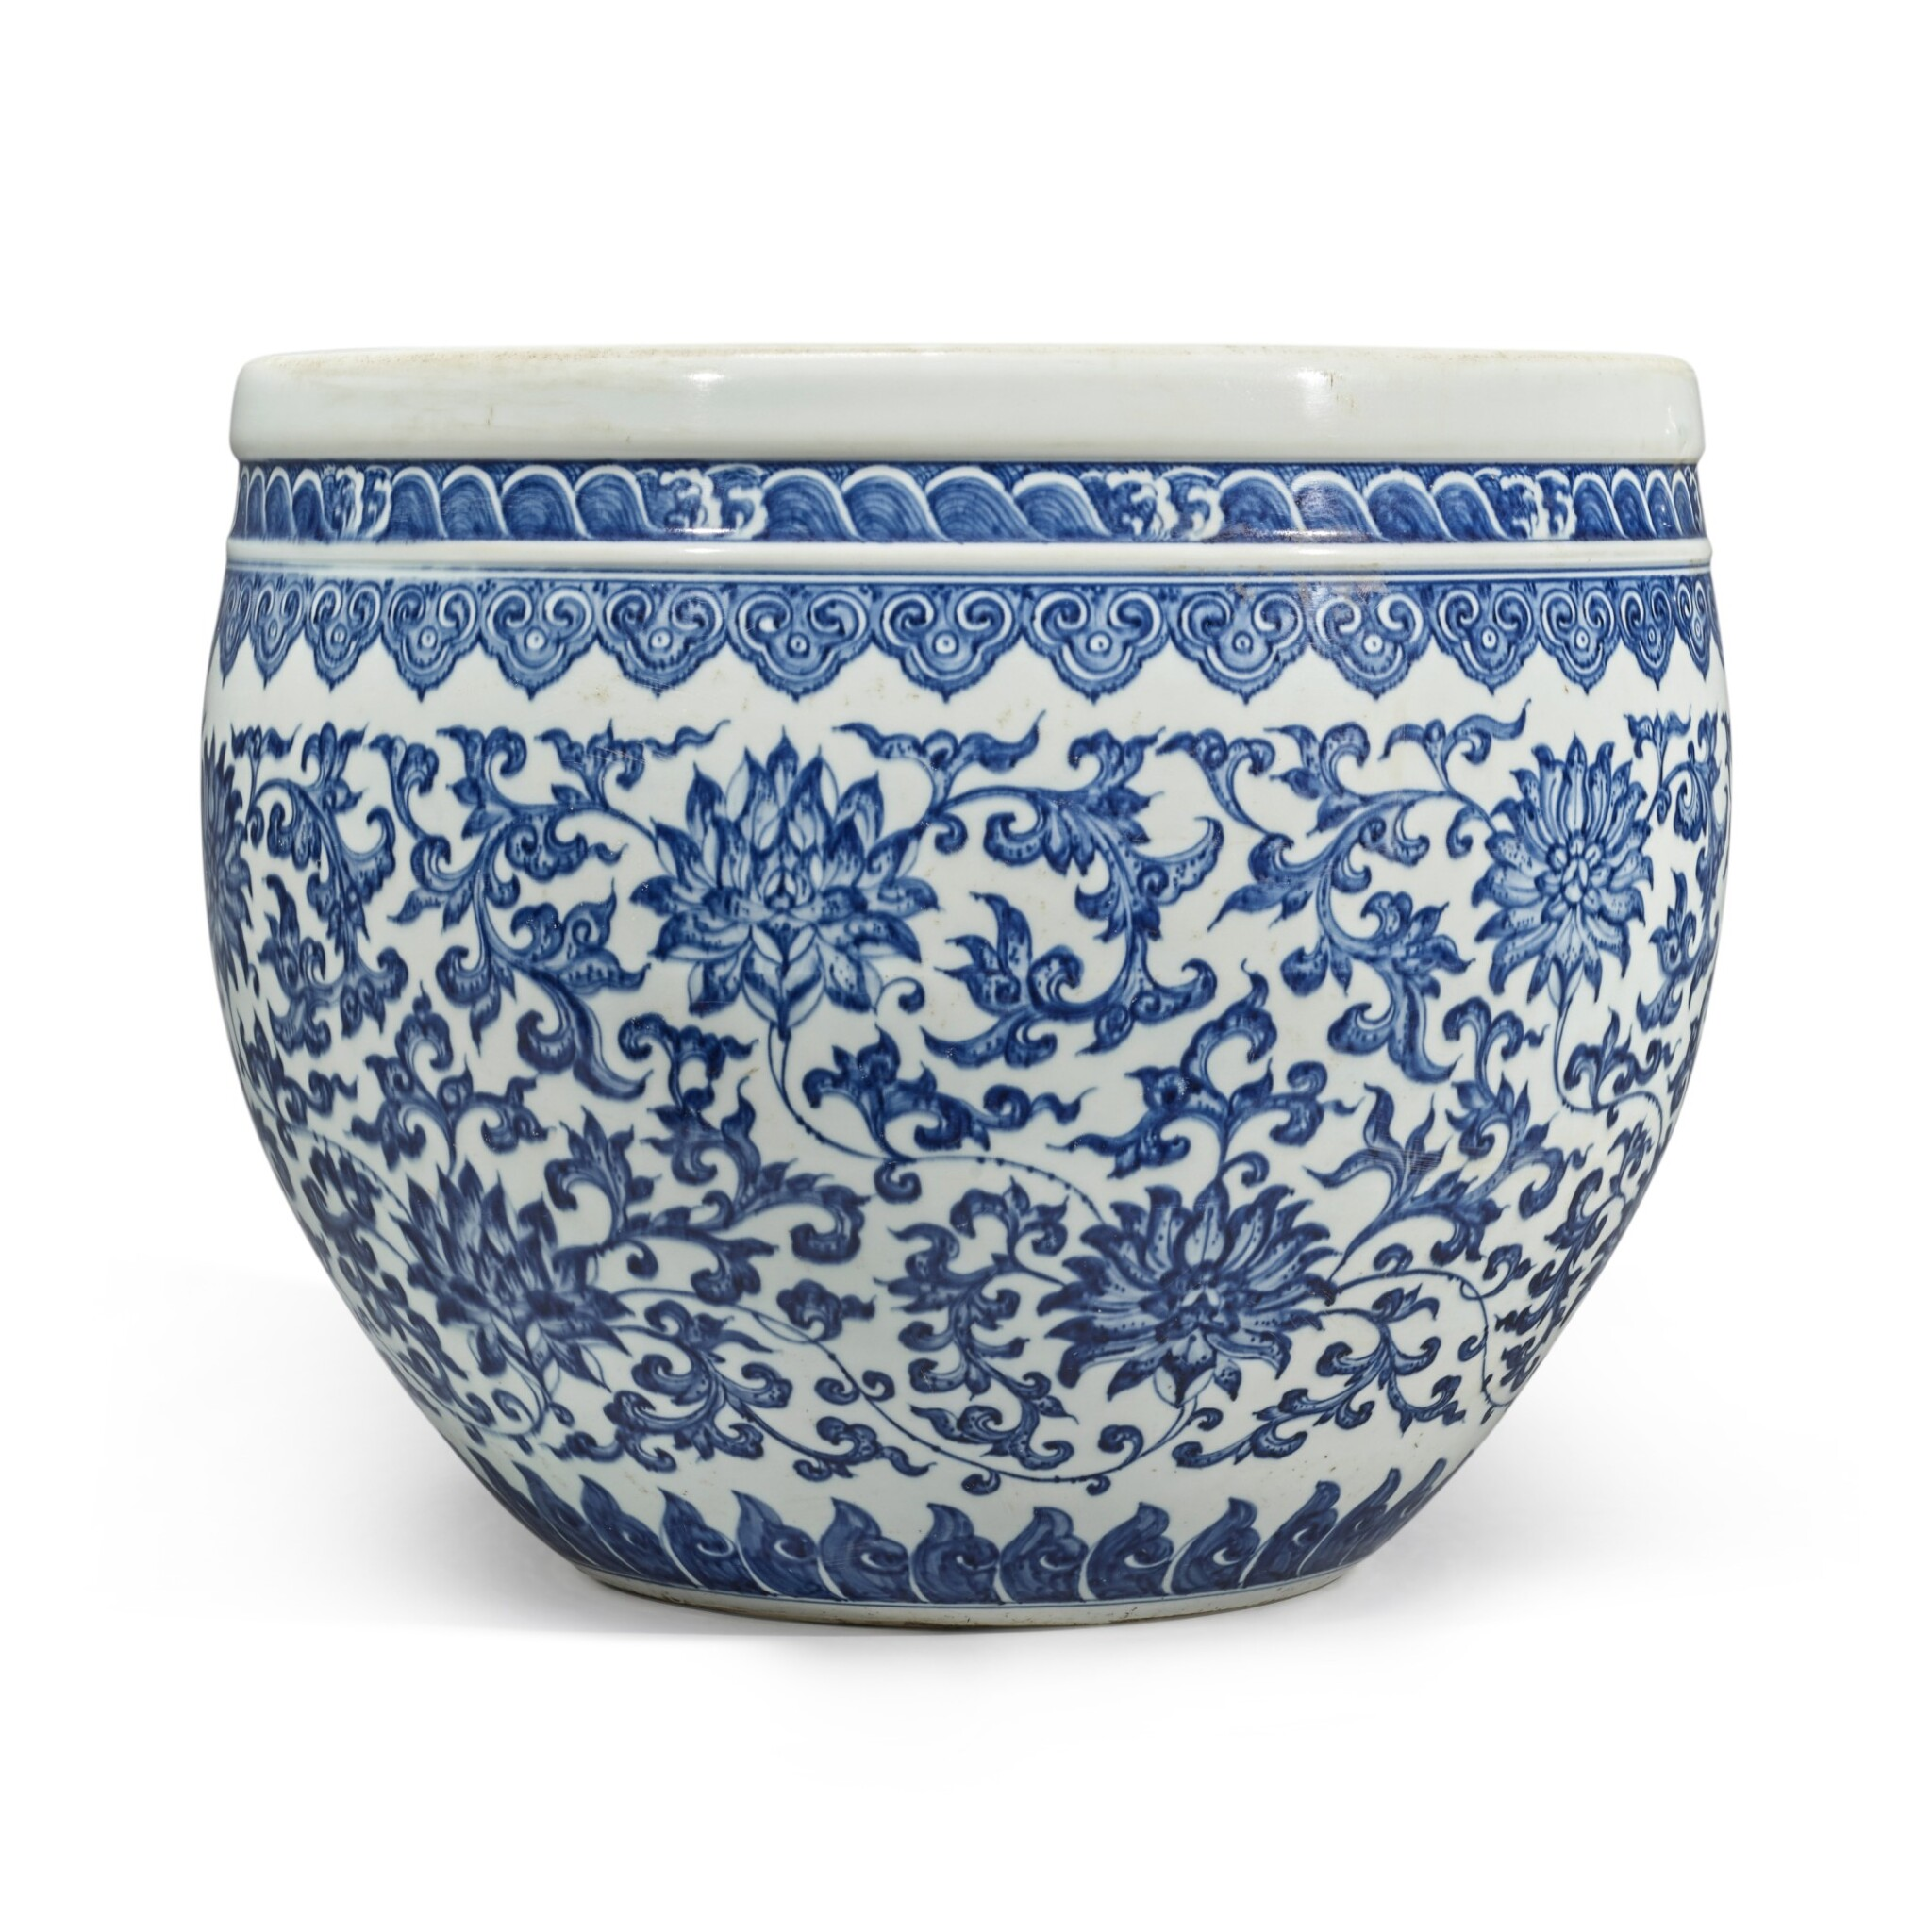 View full screen - View 1 of Lot 74. A blue and white 'floral' fishbowl, Qing dynasty, 18th century | 清十八世紀 青花纏枝蓮紋缸.